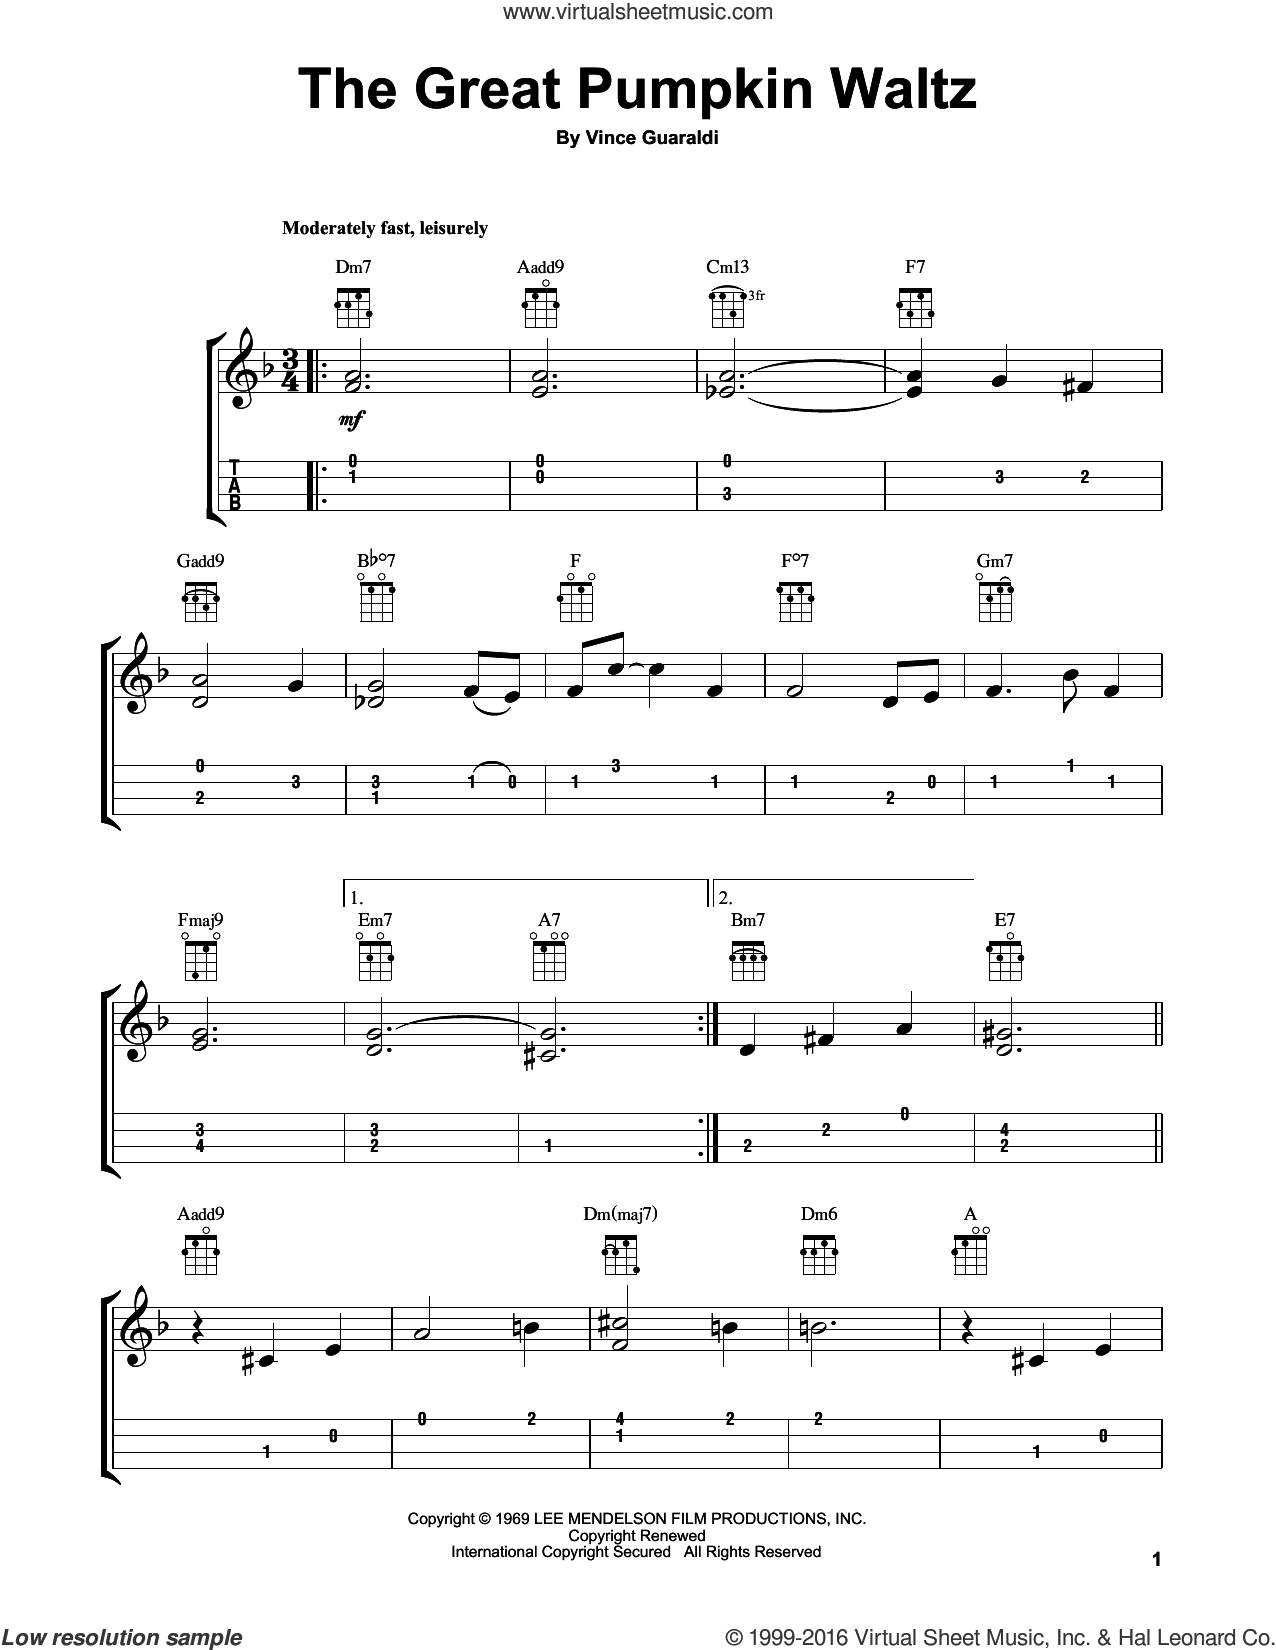 The Great Pumpkin Waltz sheet music for ukulele by Vince Guaraldi. Score Image Preview.